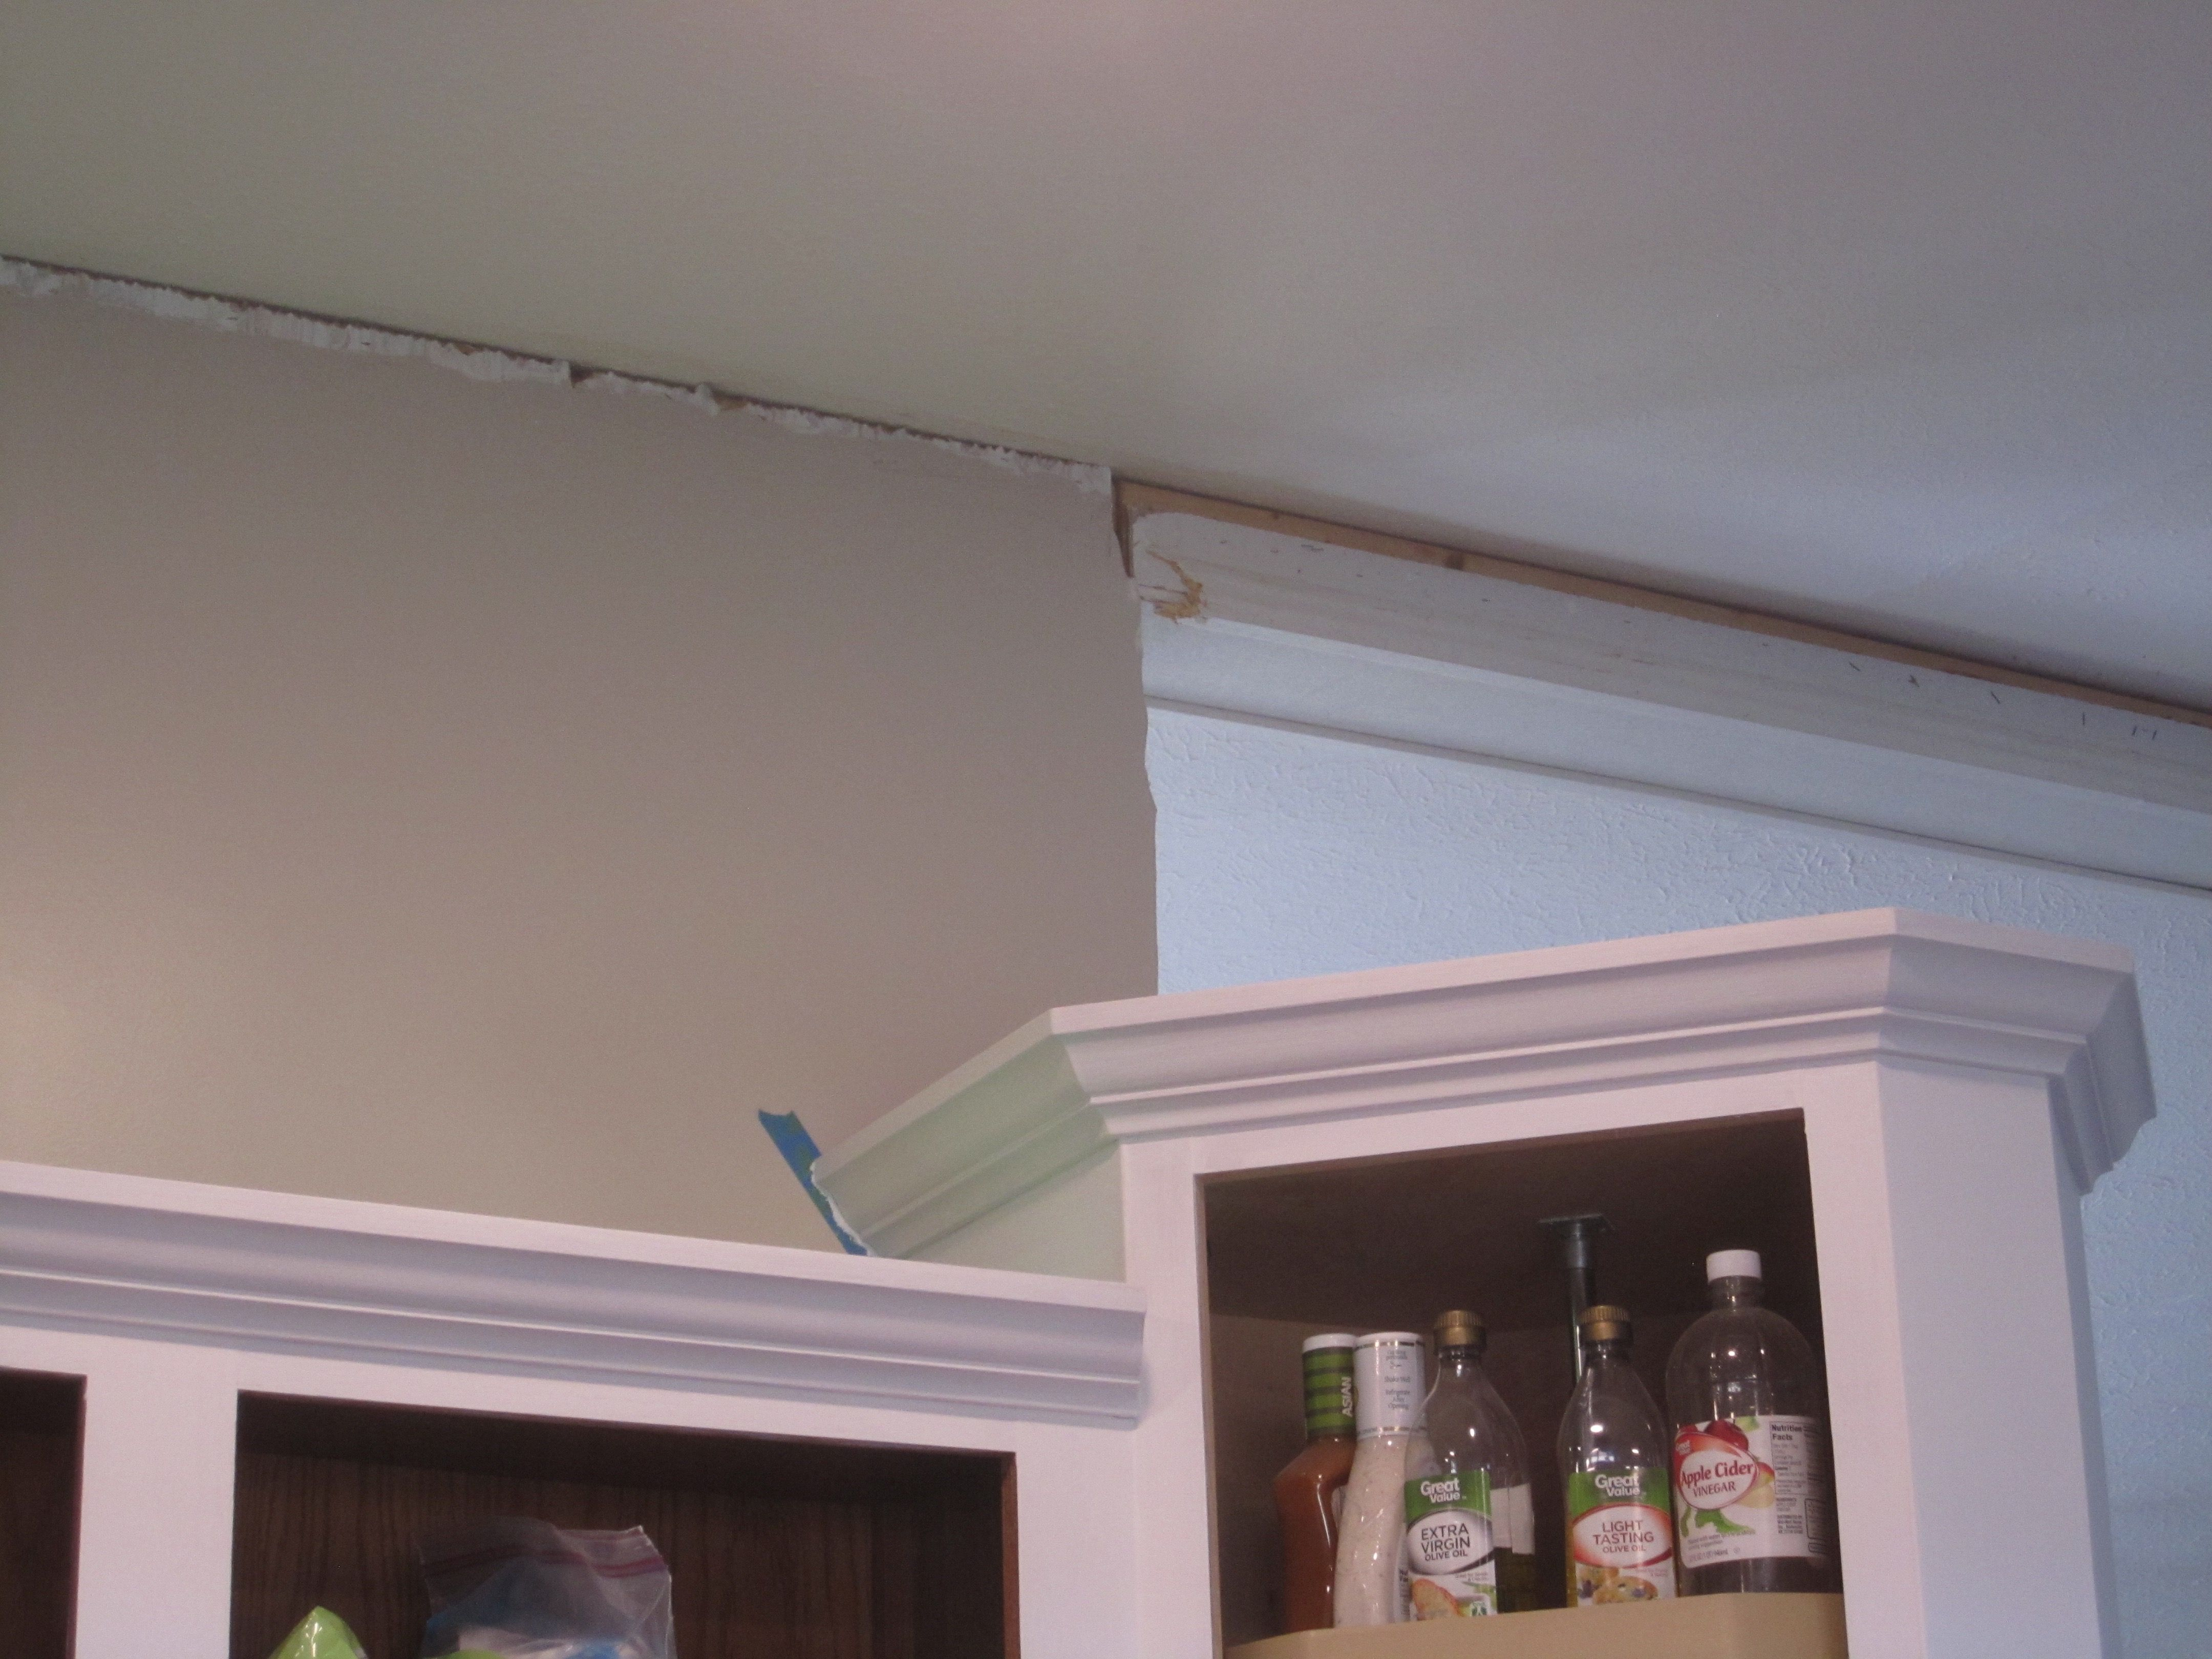 All But The Fridge Cabinet Has Upper Crown Moulding And Lower Panel Moulding Finished This Is The Corner Above The Panel Moulding Kitchen Bar Kitchen Remodel